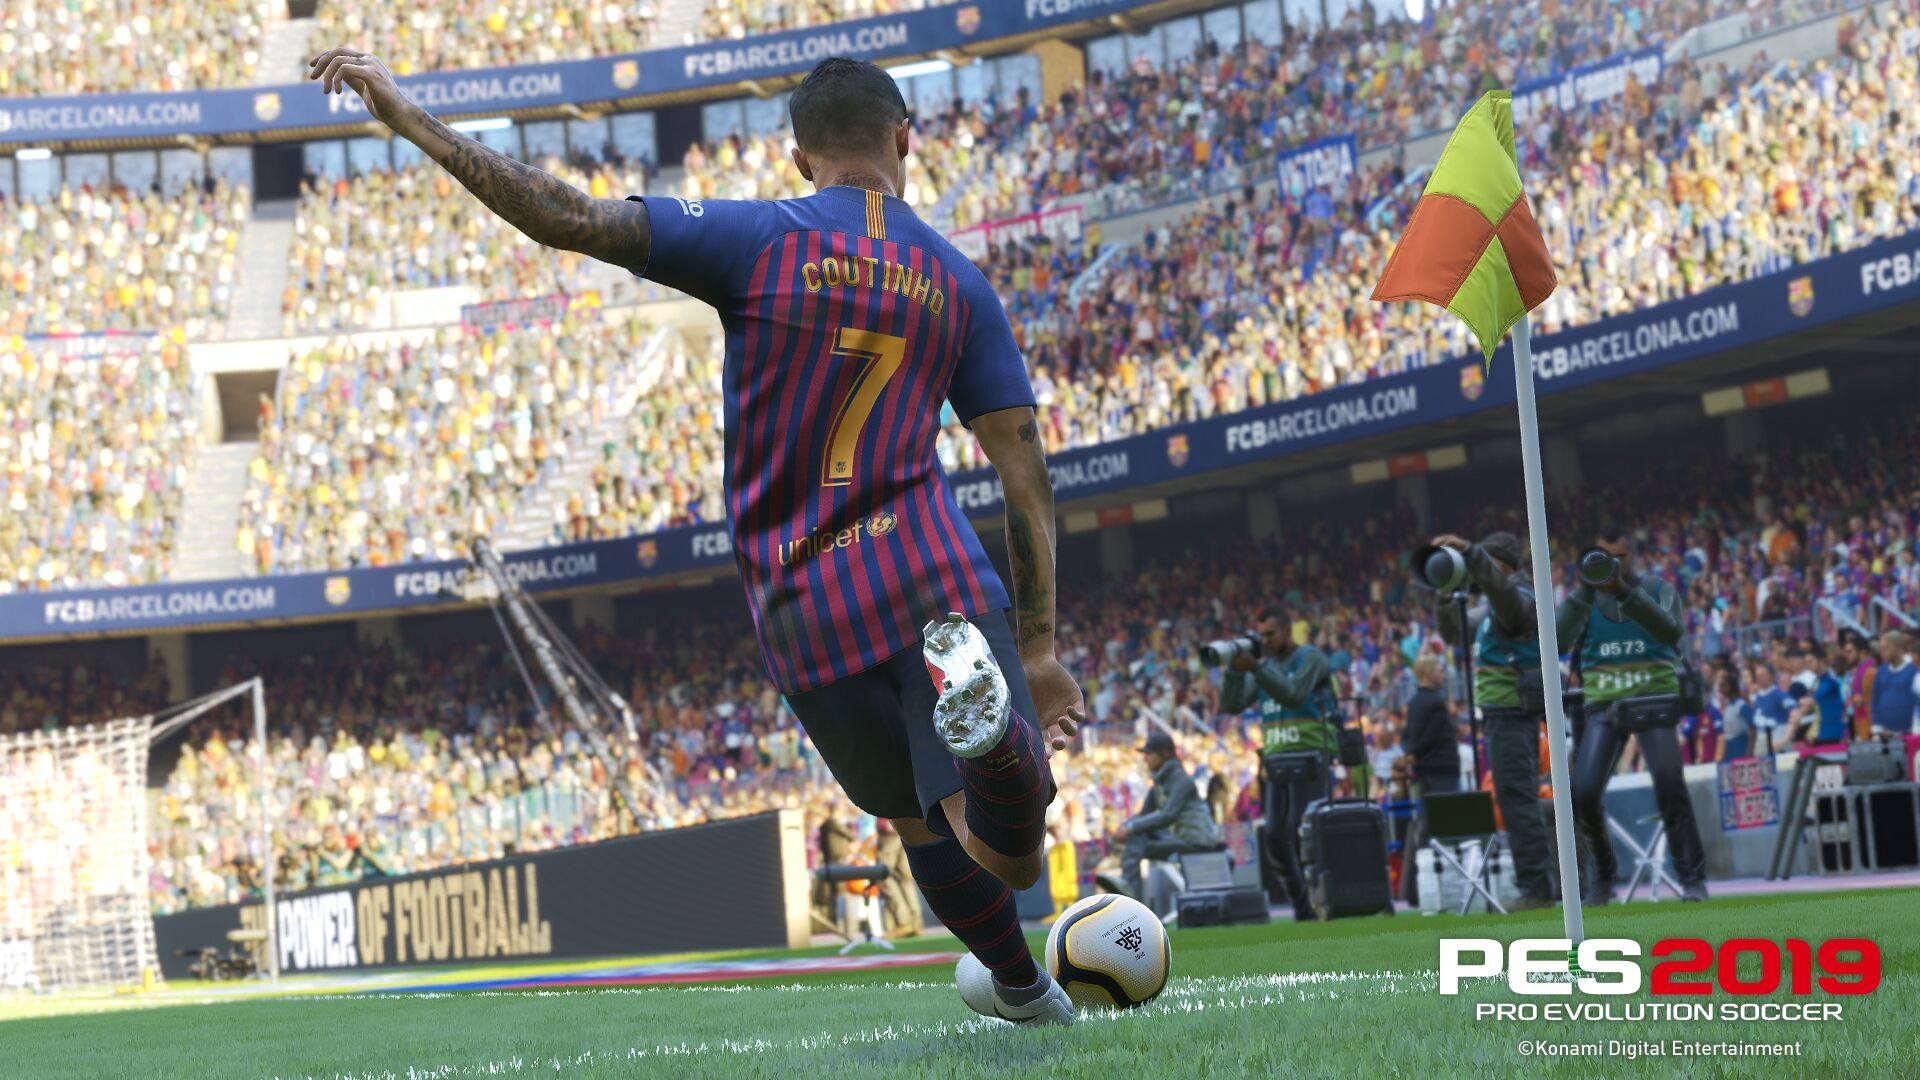 Review: Pro Evolution Soccer 2019 - FOOTBALL FASHION ORG